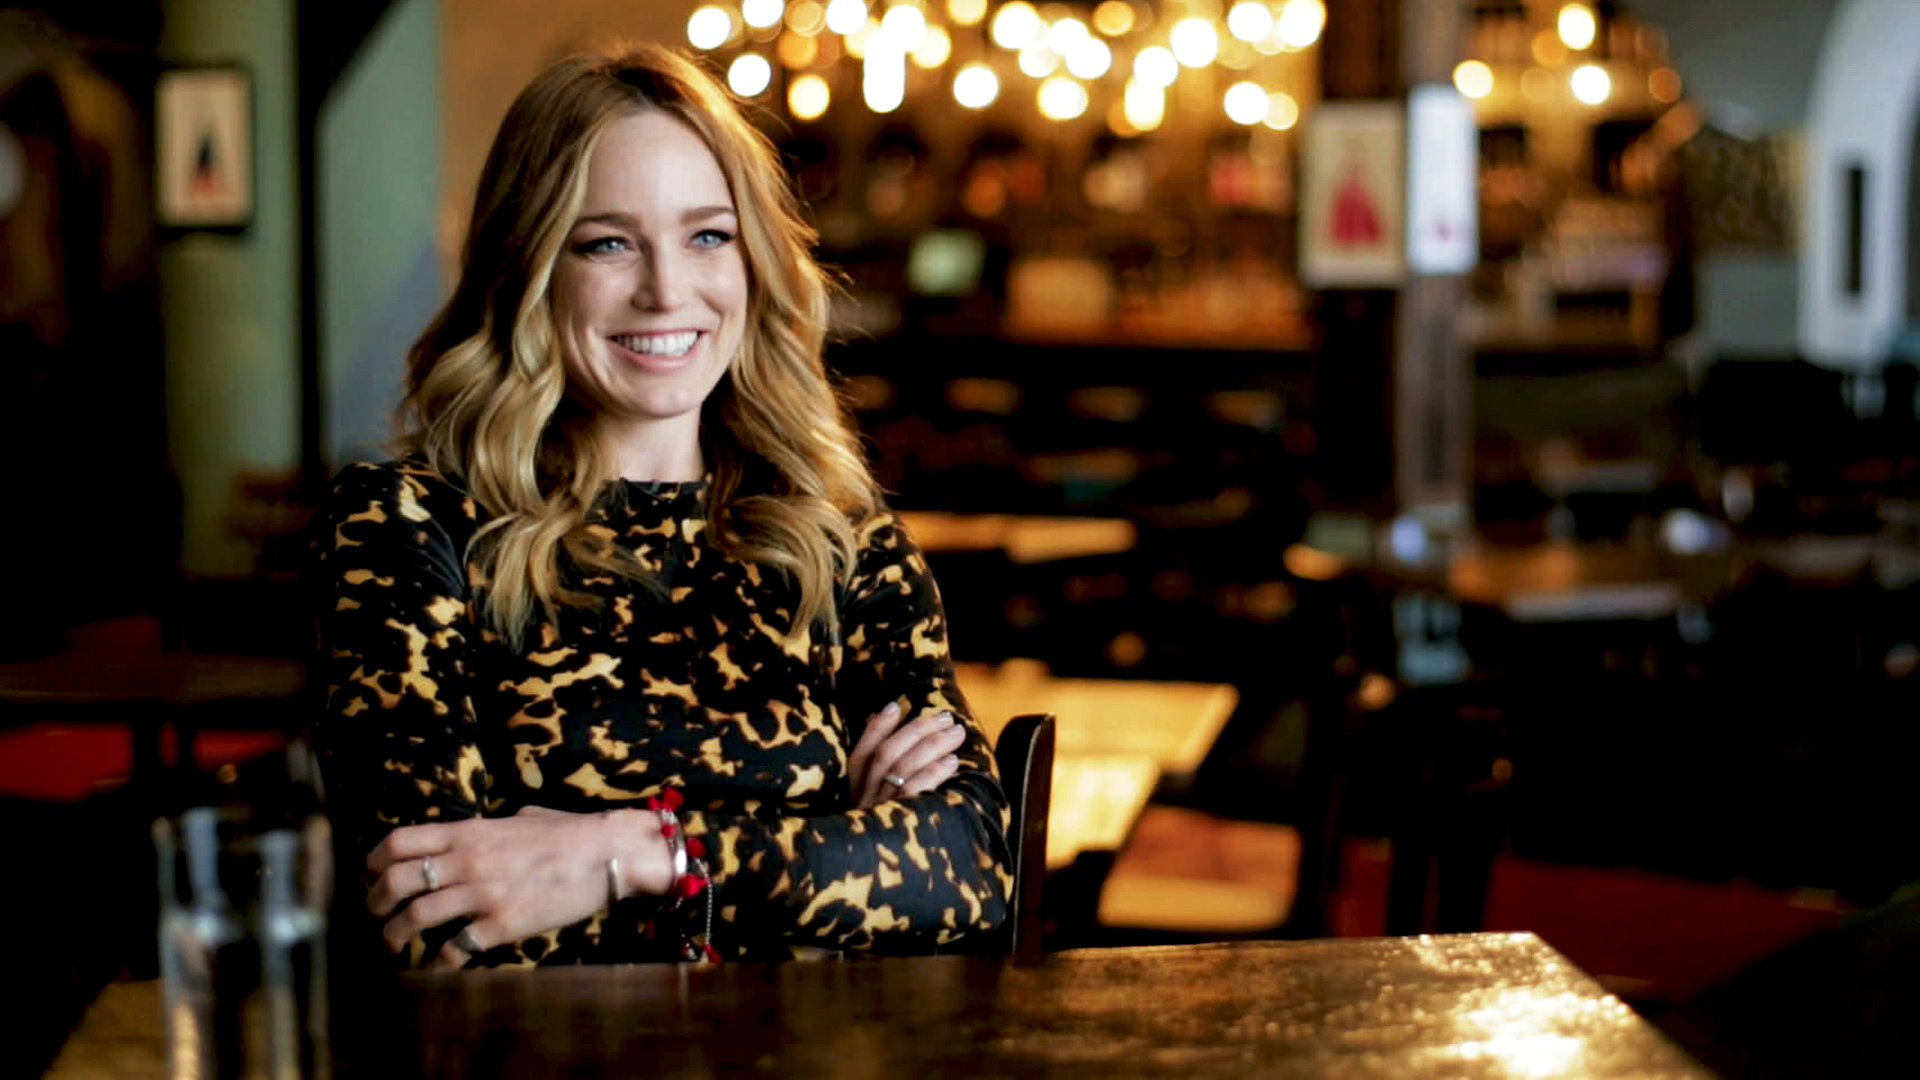 caity lotz smile hd wallpaper 62242